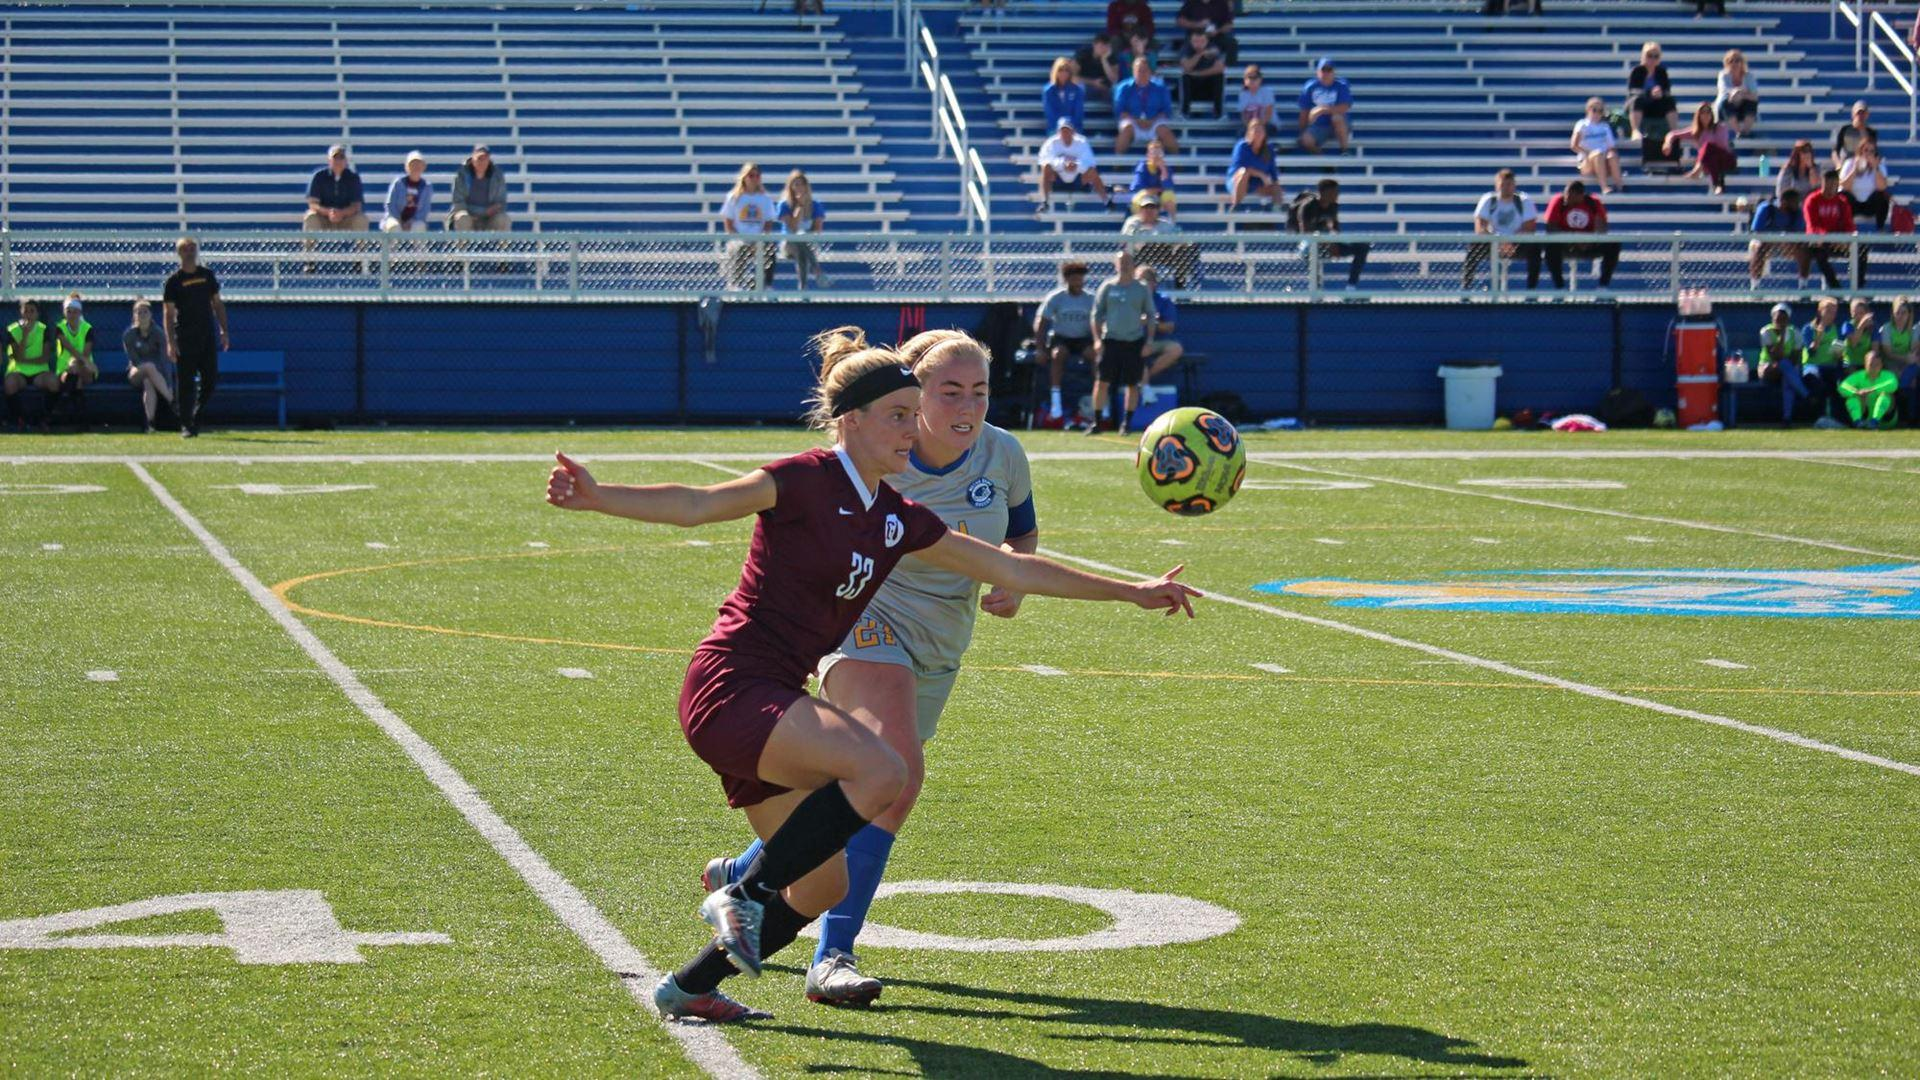 Women's soccer narrowly defeats Notre Dame to open season with win